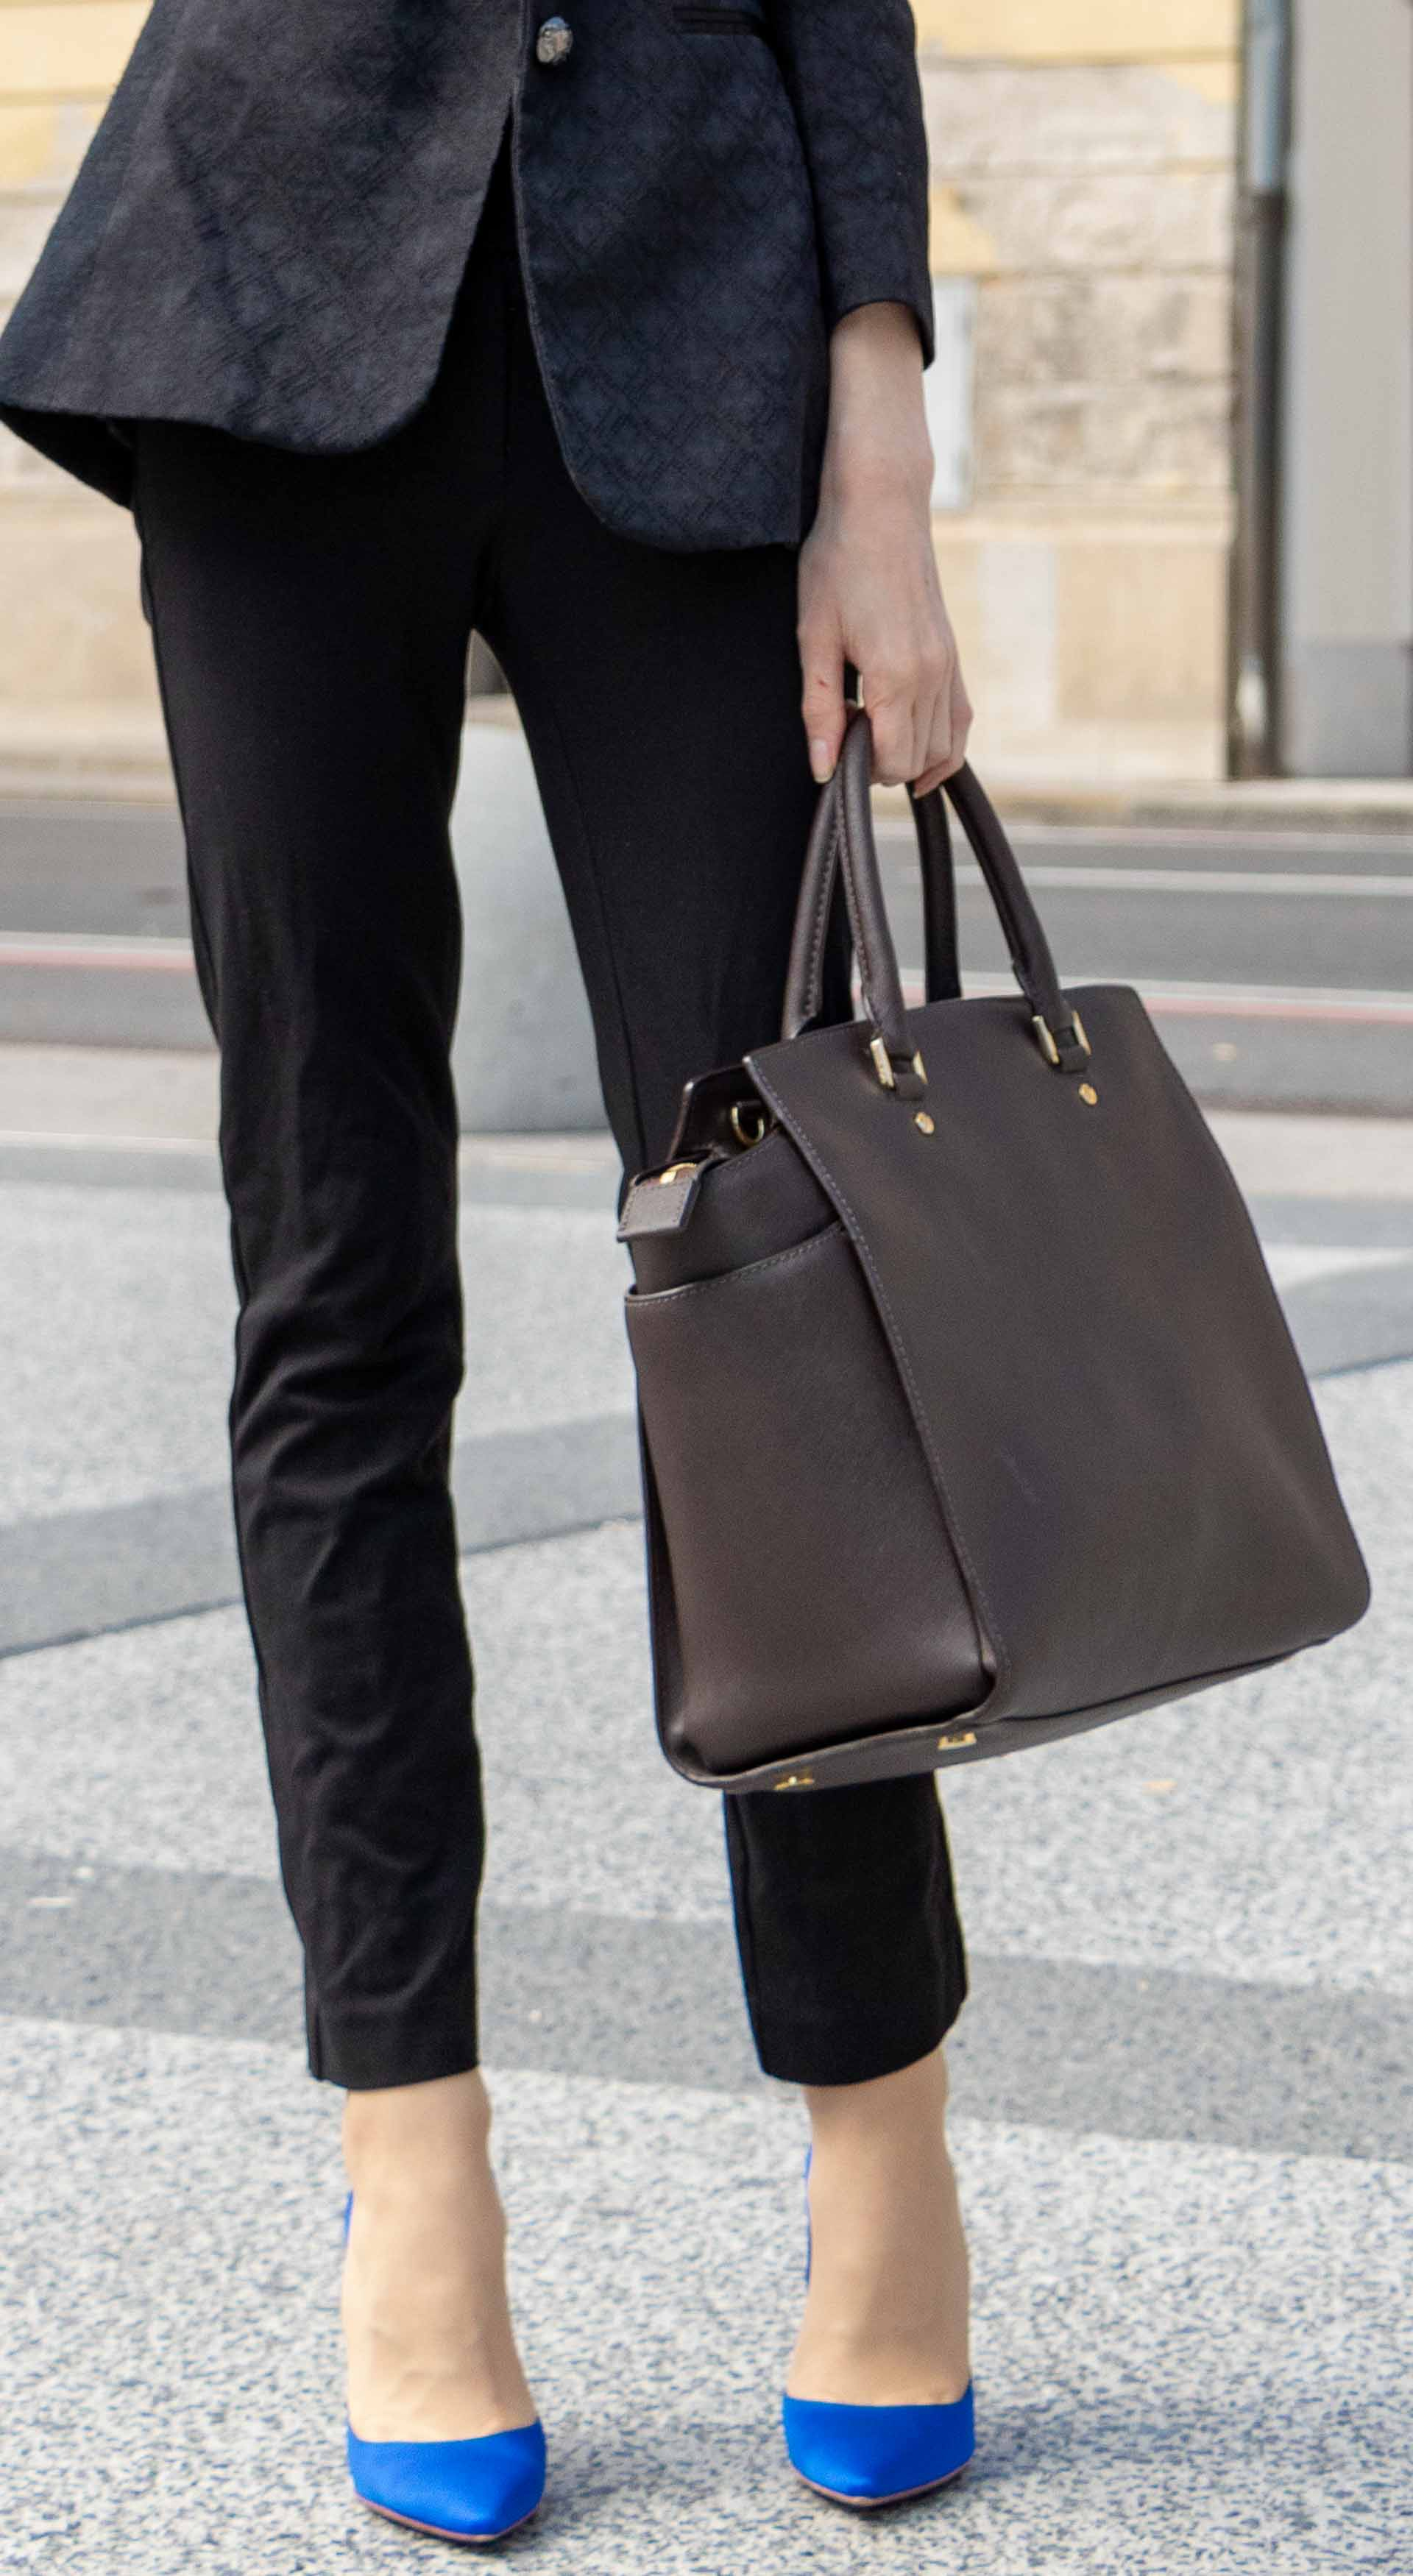 Beautiful Slovenian Fashion Blogger Veronika Lipar of Brunette from Wall dressed in black pantsuit, brown Michael Kors selma top handle tote bag, Gianvito Rossi blue satin pumps for work in autumn